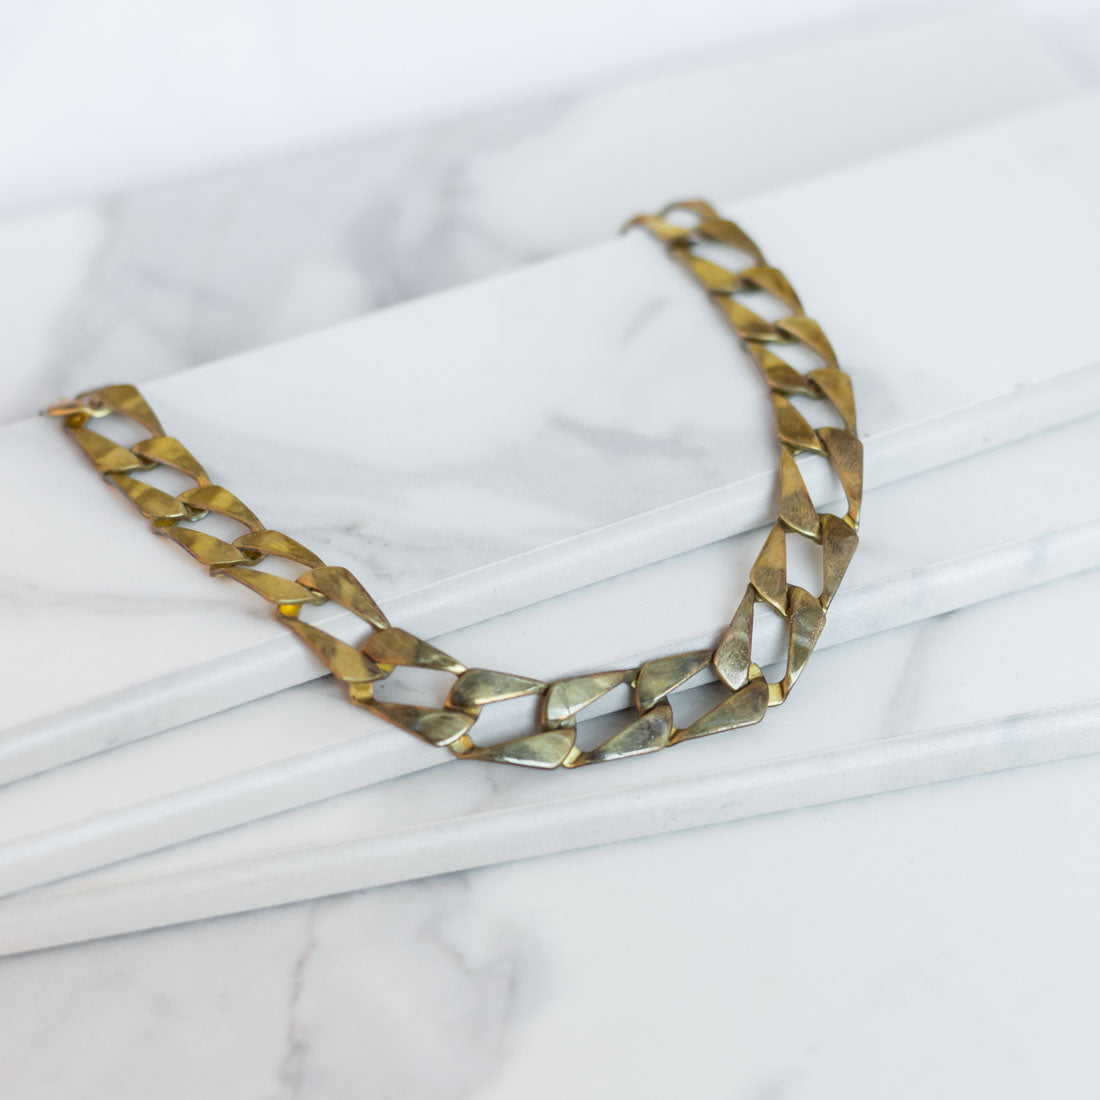 Twisted Silver Jewelry - Muscle Necklace